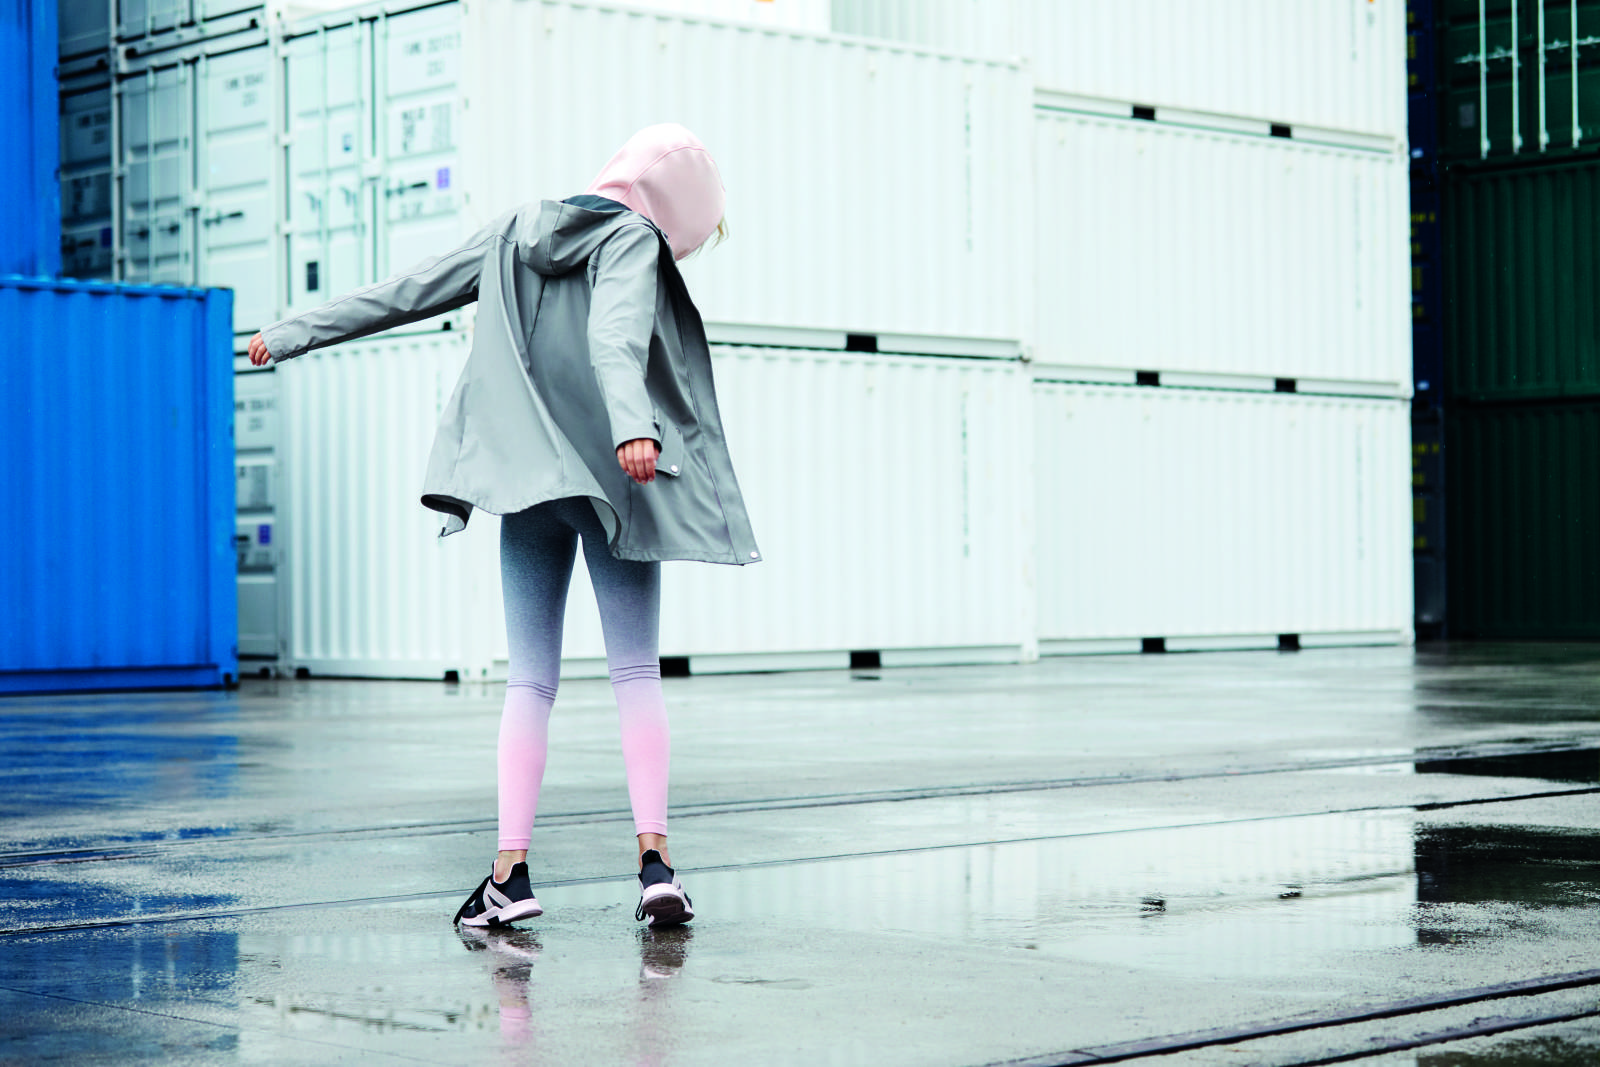 Grey Raincoat E19 $23, Slogan Scuba Sweat E14 $16, Ombre Leggings, E11 $13, Lace Up Black Tariners E16 $18 (2)